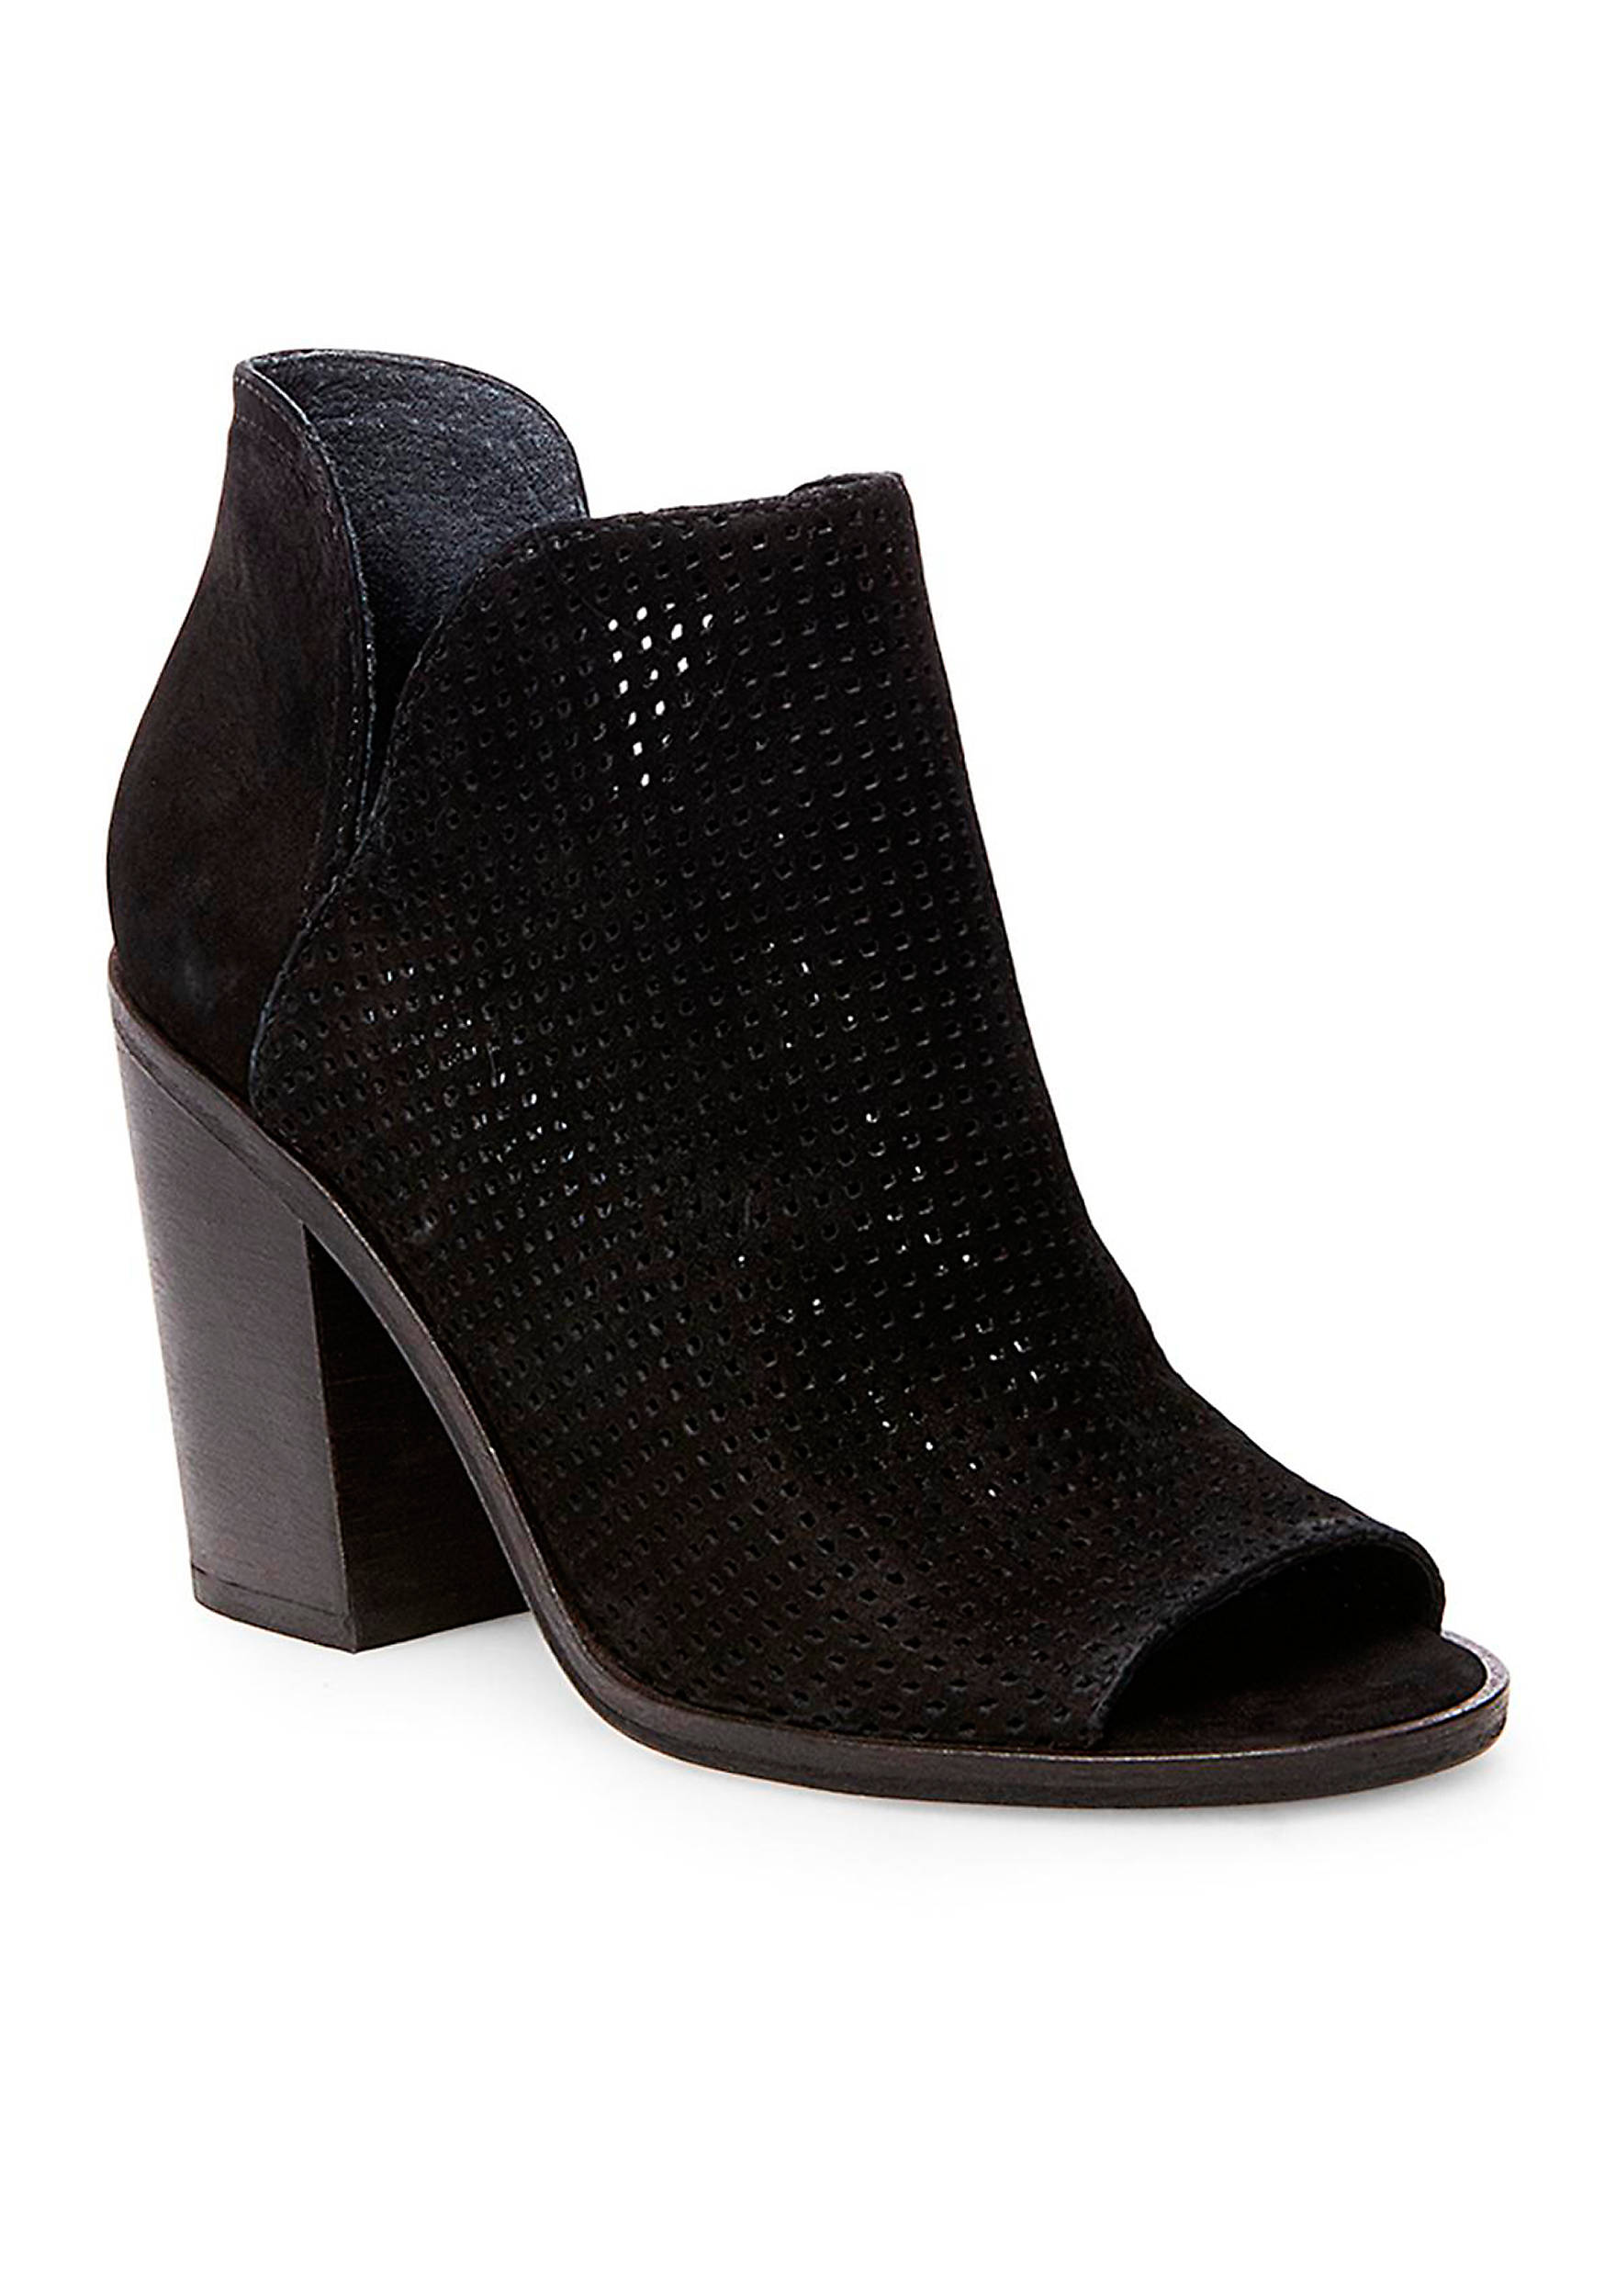 Clearance: Boots & Booties for Women | belk